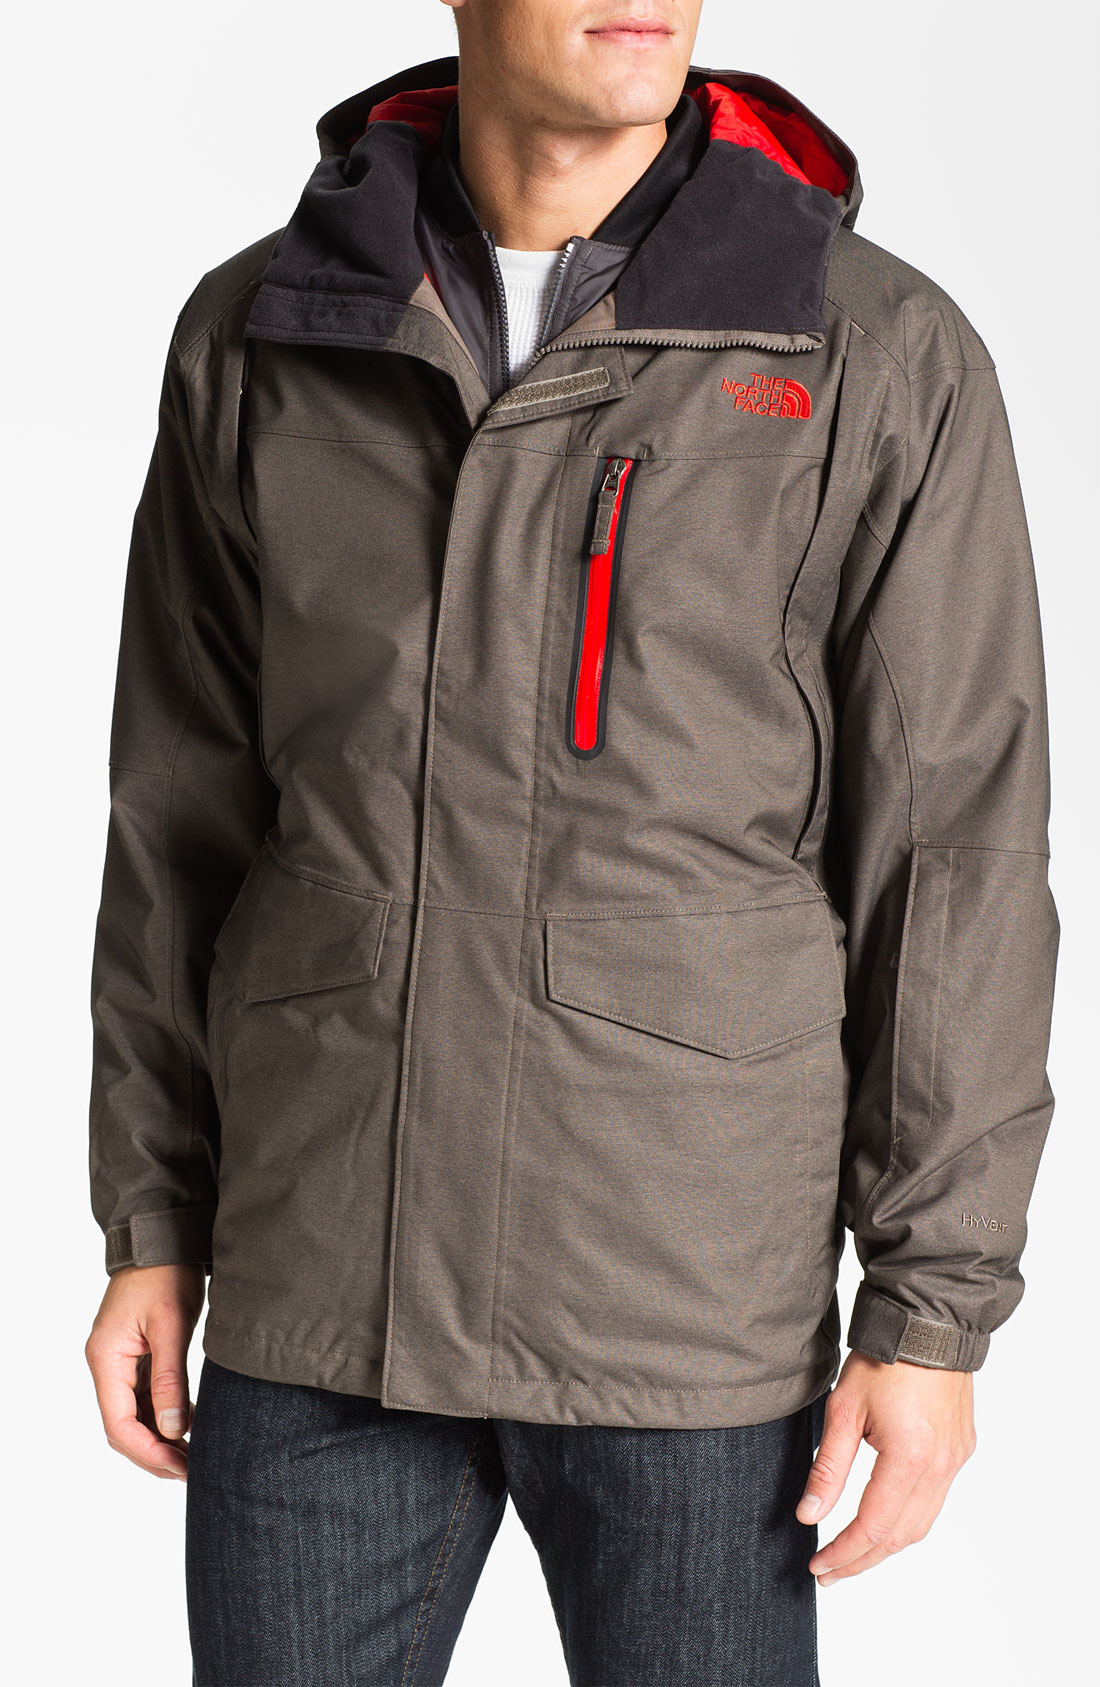 lyst the north face houser triclimate hyvent waterproof 3in1 jacket in brown for men. Black Bedroom Furniture Sets. Home Design Ideas